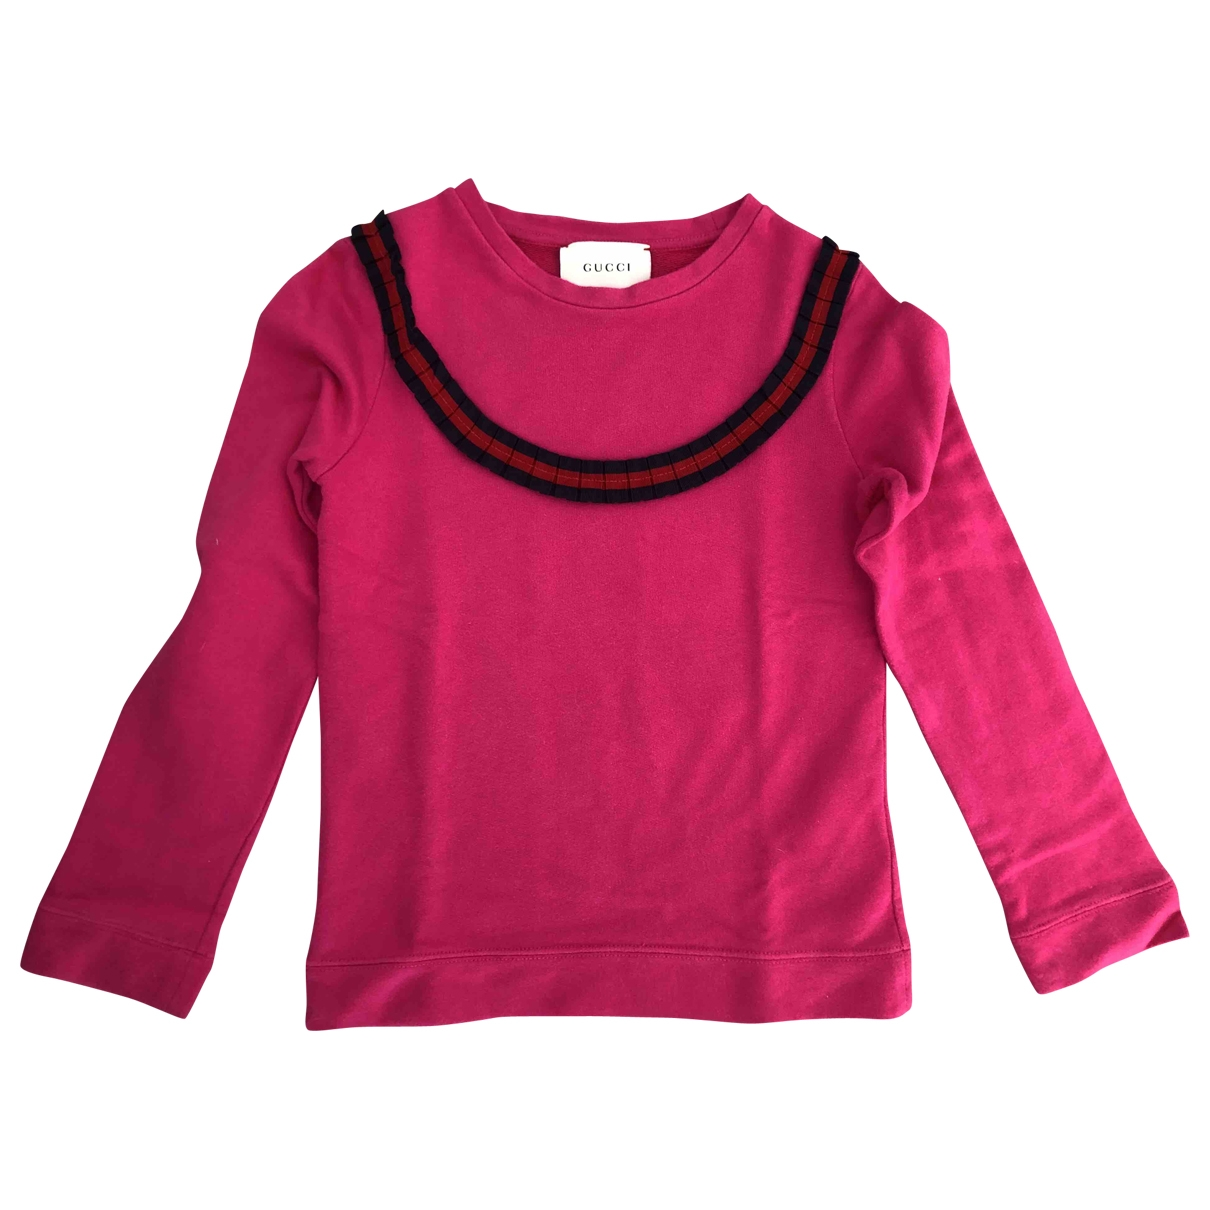 Gucci \N Pink Cotton Knitwear for Kids 8 years - up to 128cm FR